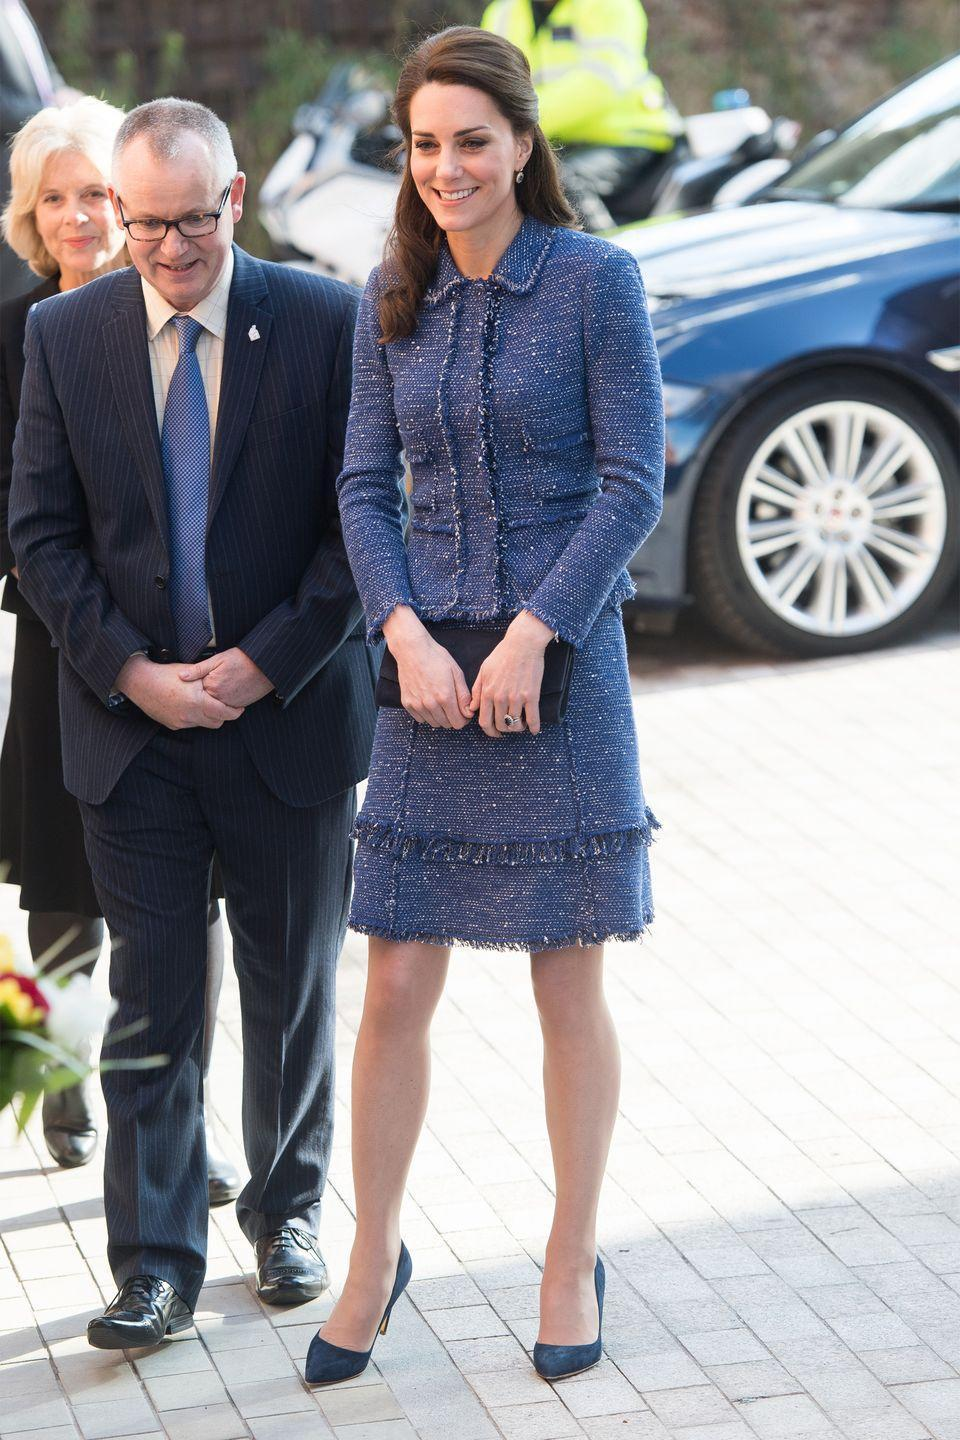 <p>Middleton wears a blue tweed skirt suit with fringe details by Rebecca Taylor with a dark navy clutch and suede pumps while visiting Ronald McDonald House Evelina London.</p>